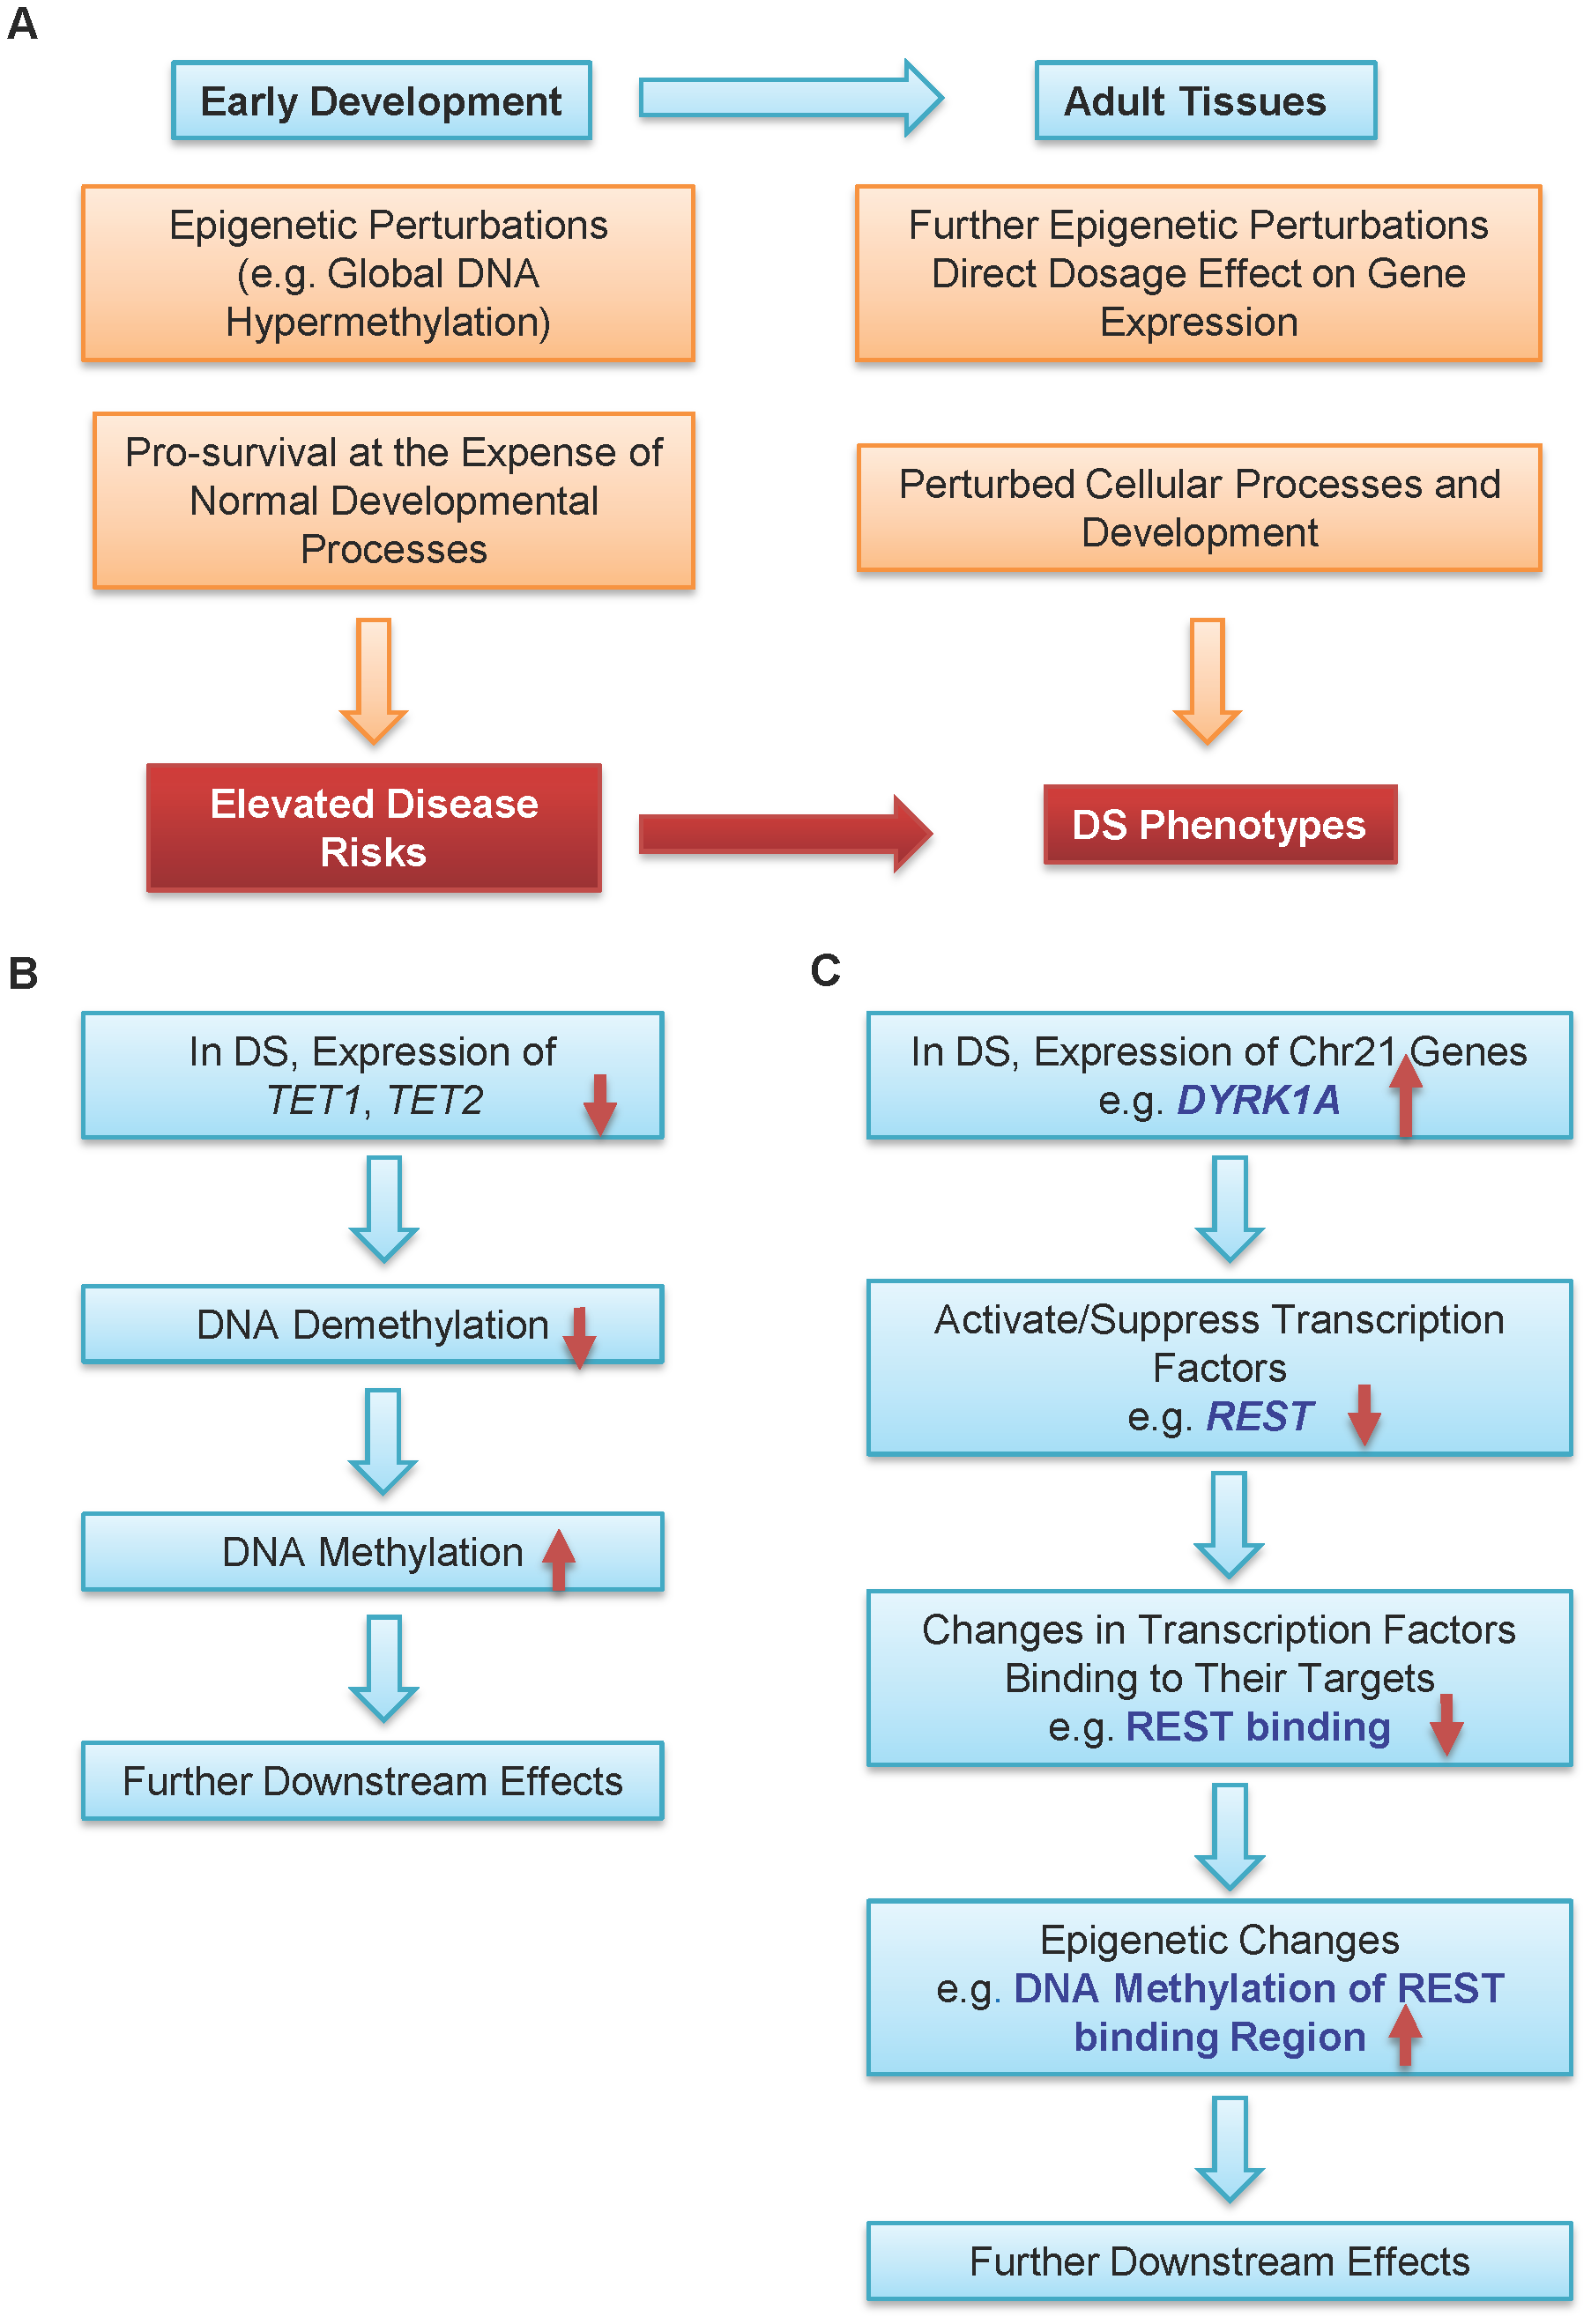 A model for epigenetic contributions to DS phenotypes.